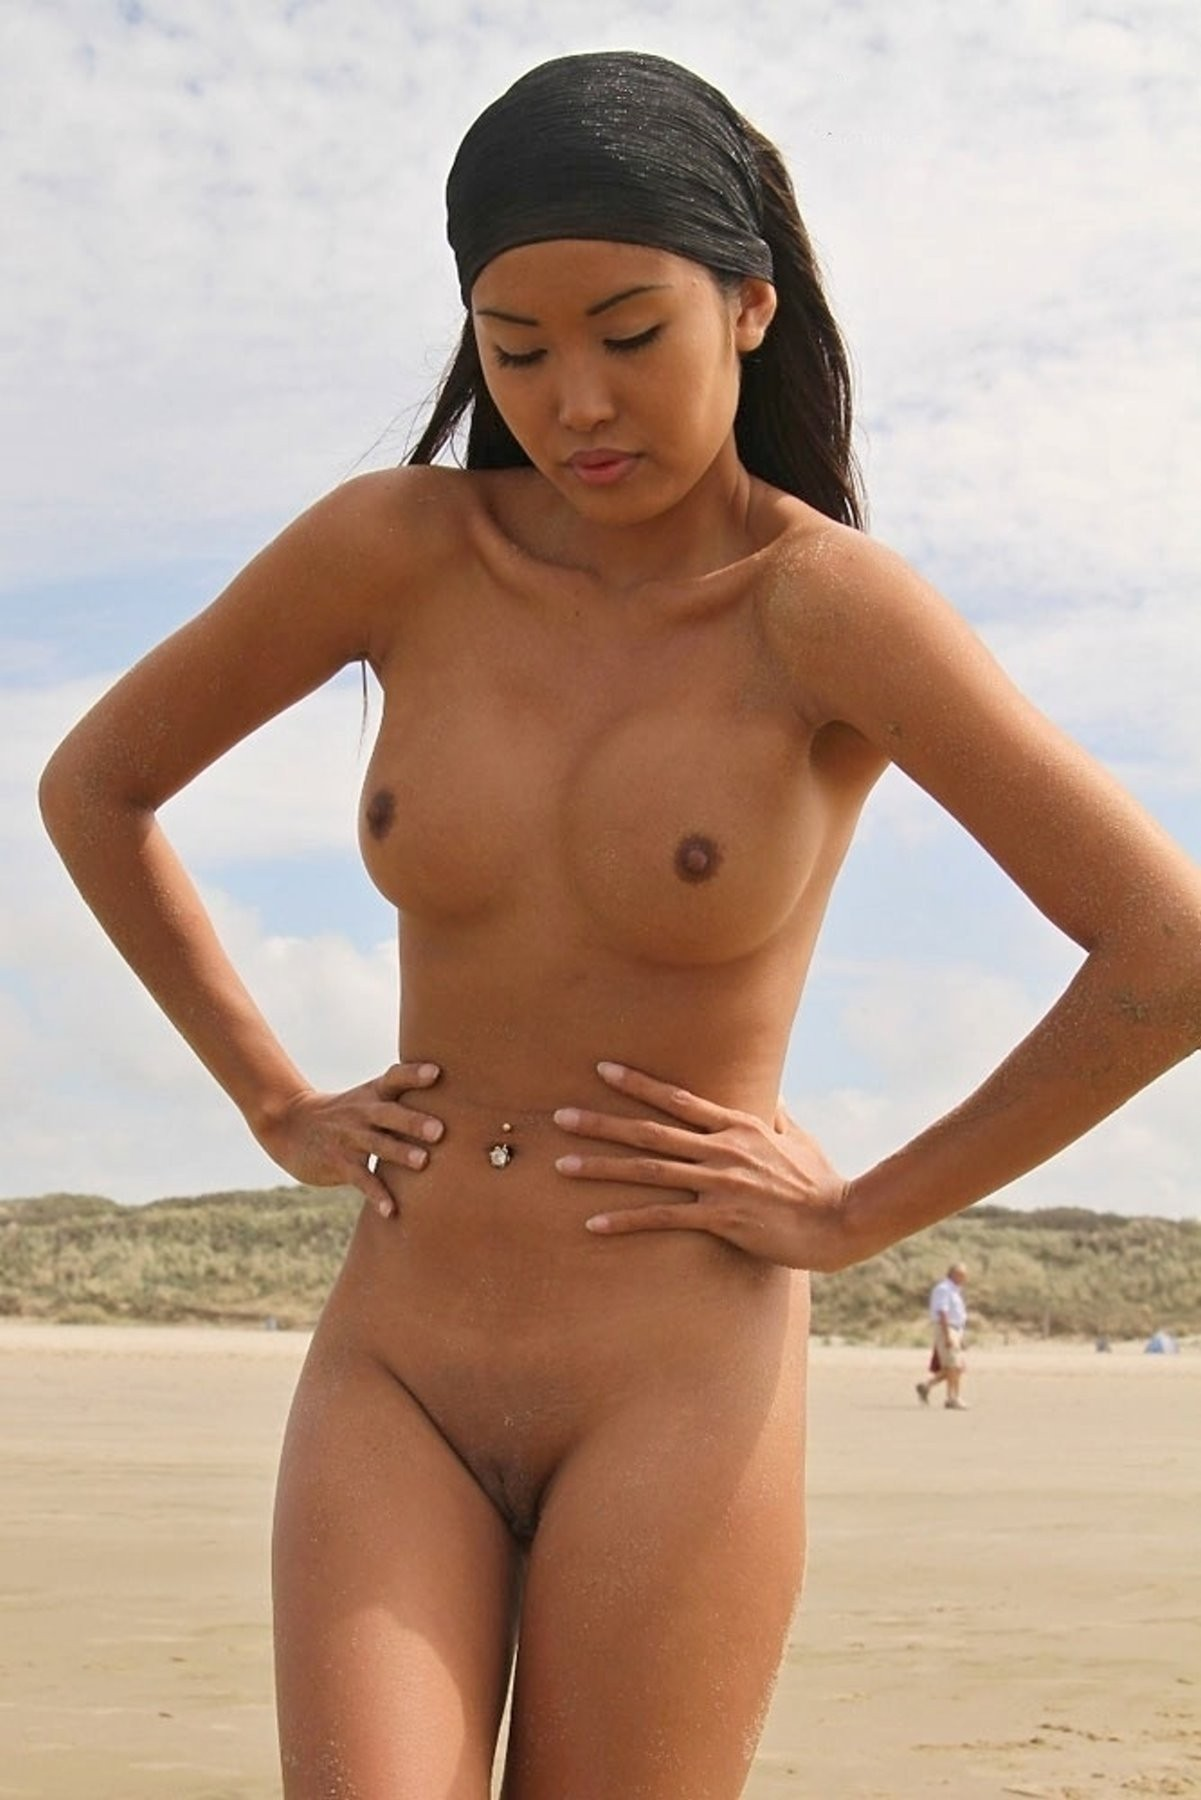 solo xxx nude hq asian pictures